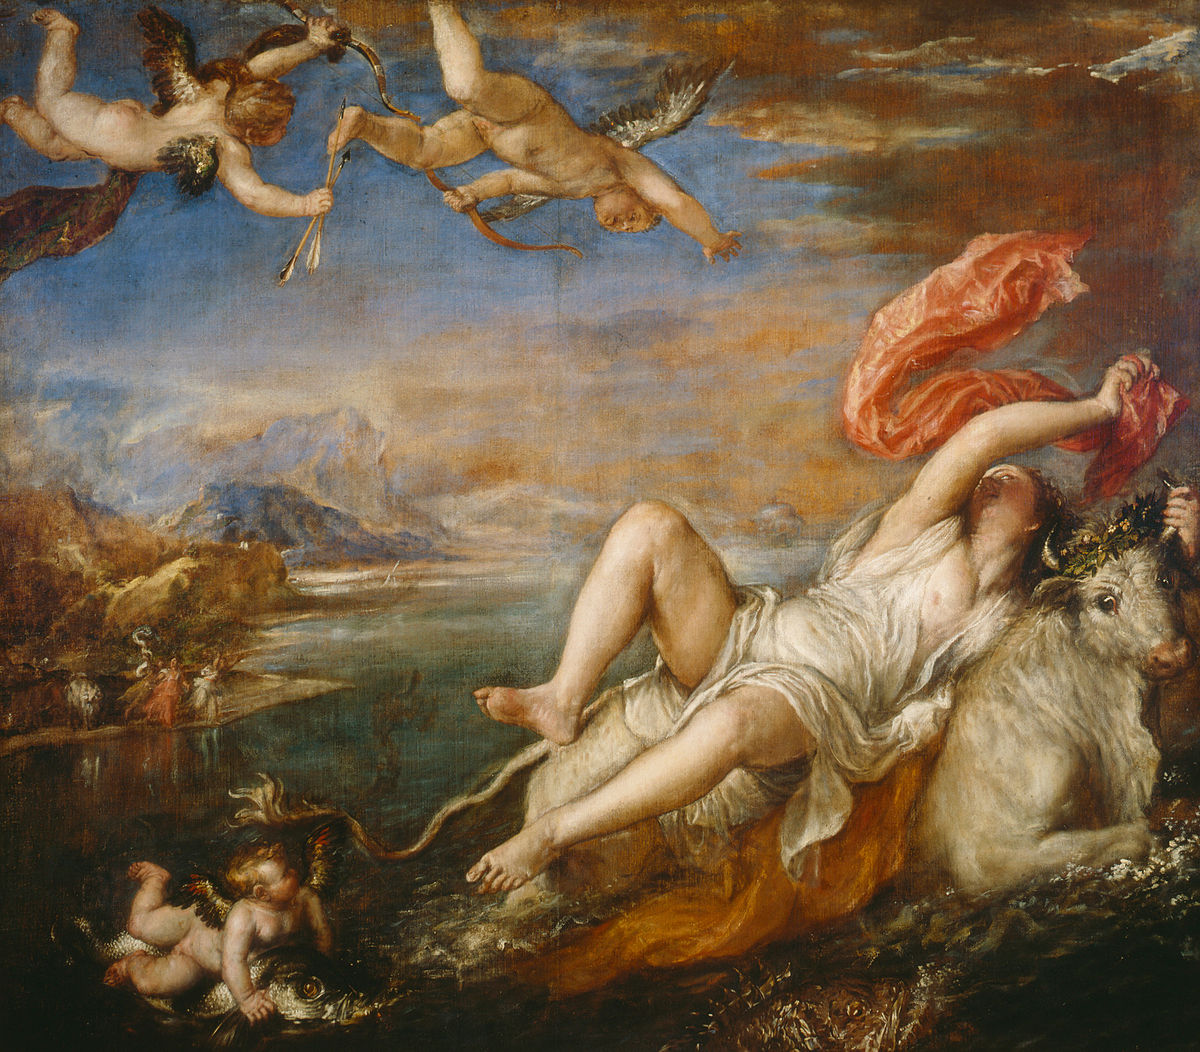 Titian: Love, Desire, Death